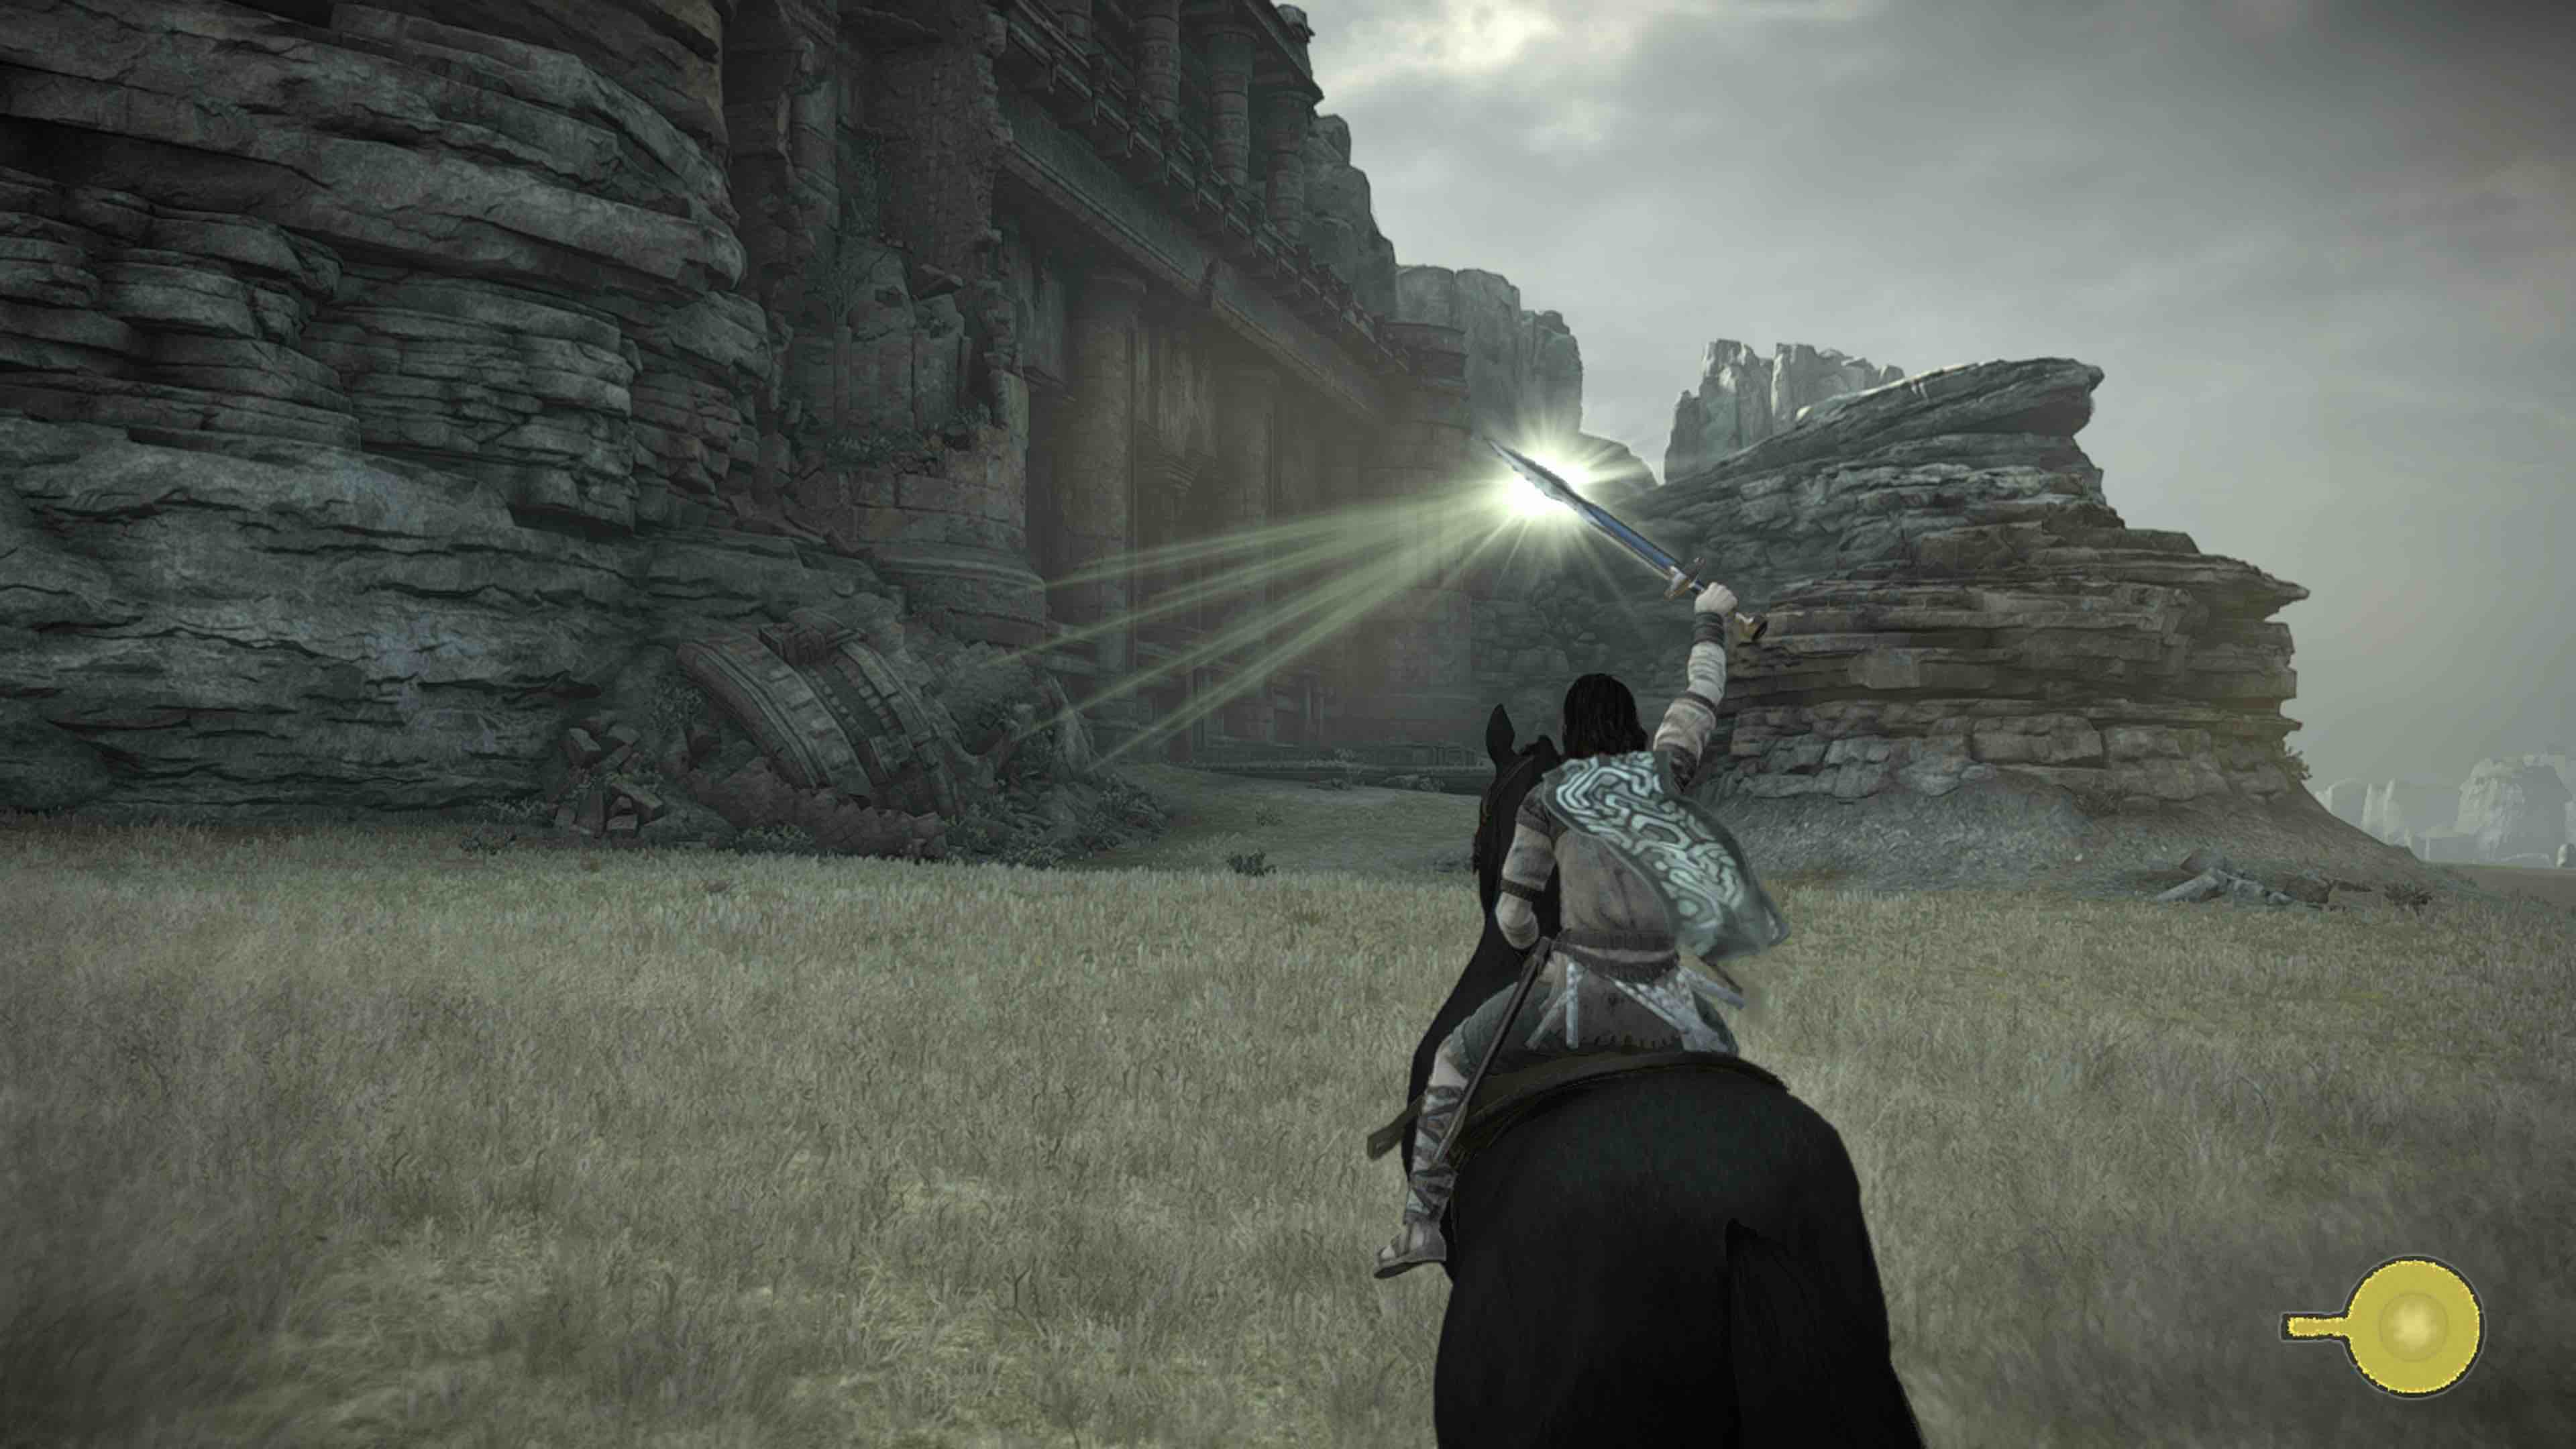 Shadow_of_the_Colossus_Coloso_6_2